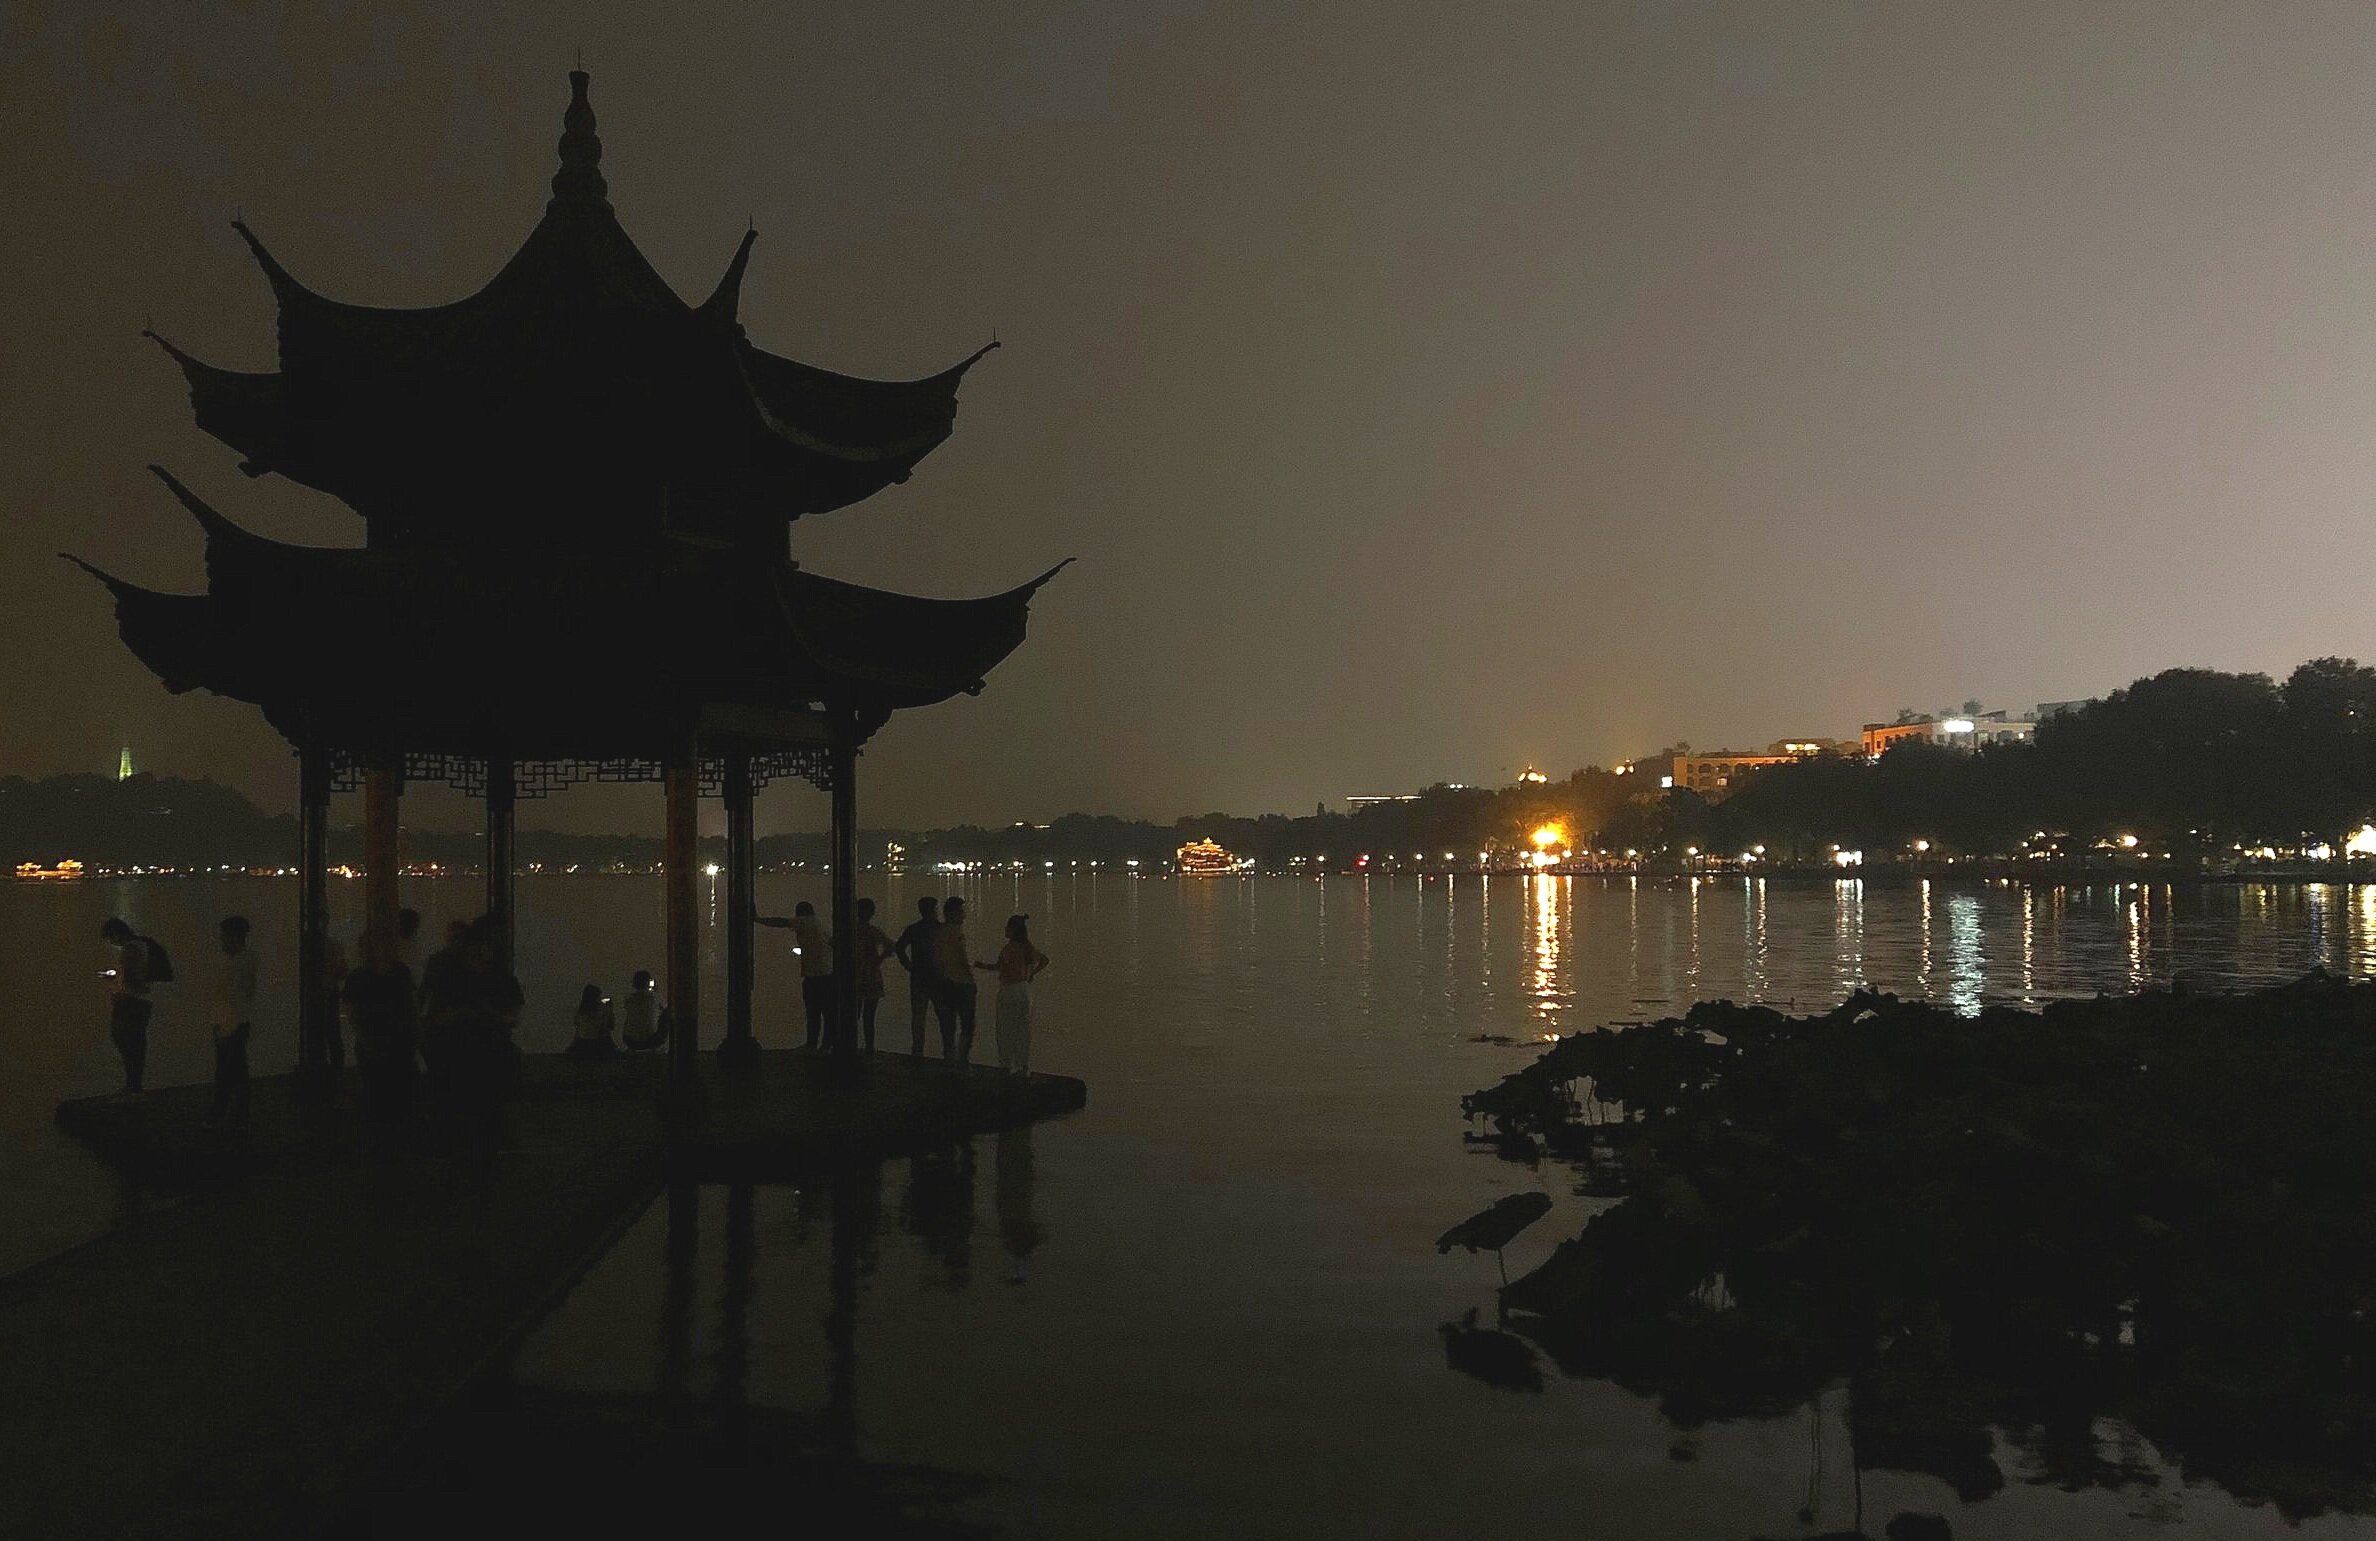 [view from a walkway at West Lake]